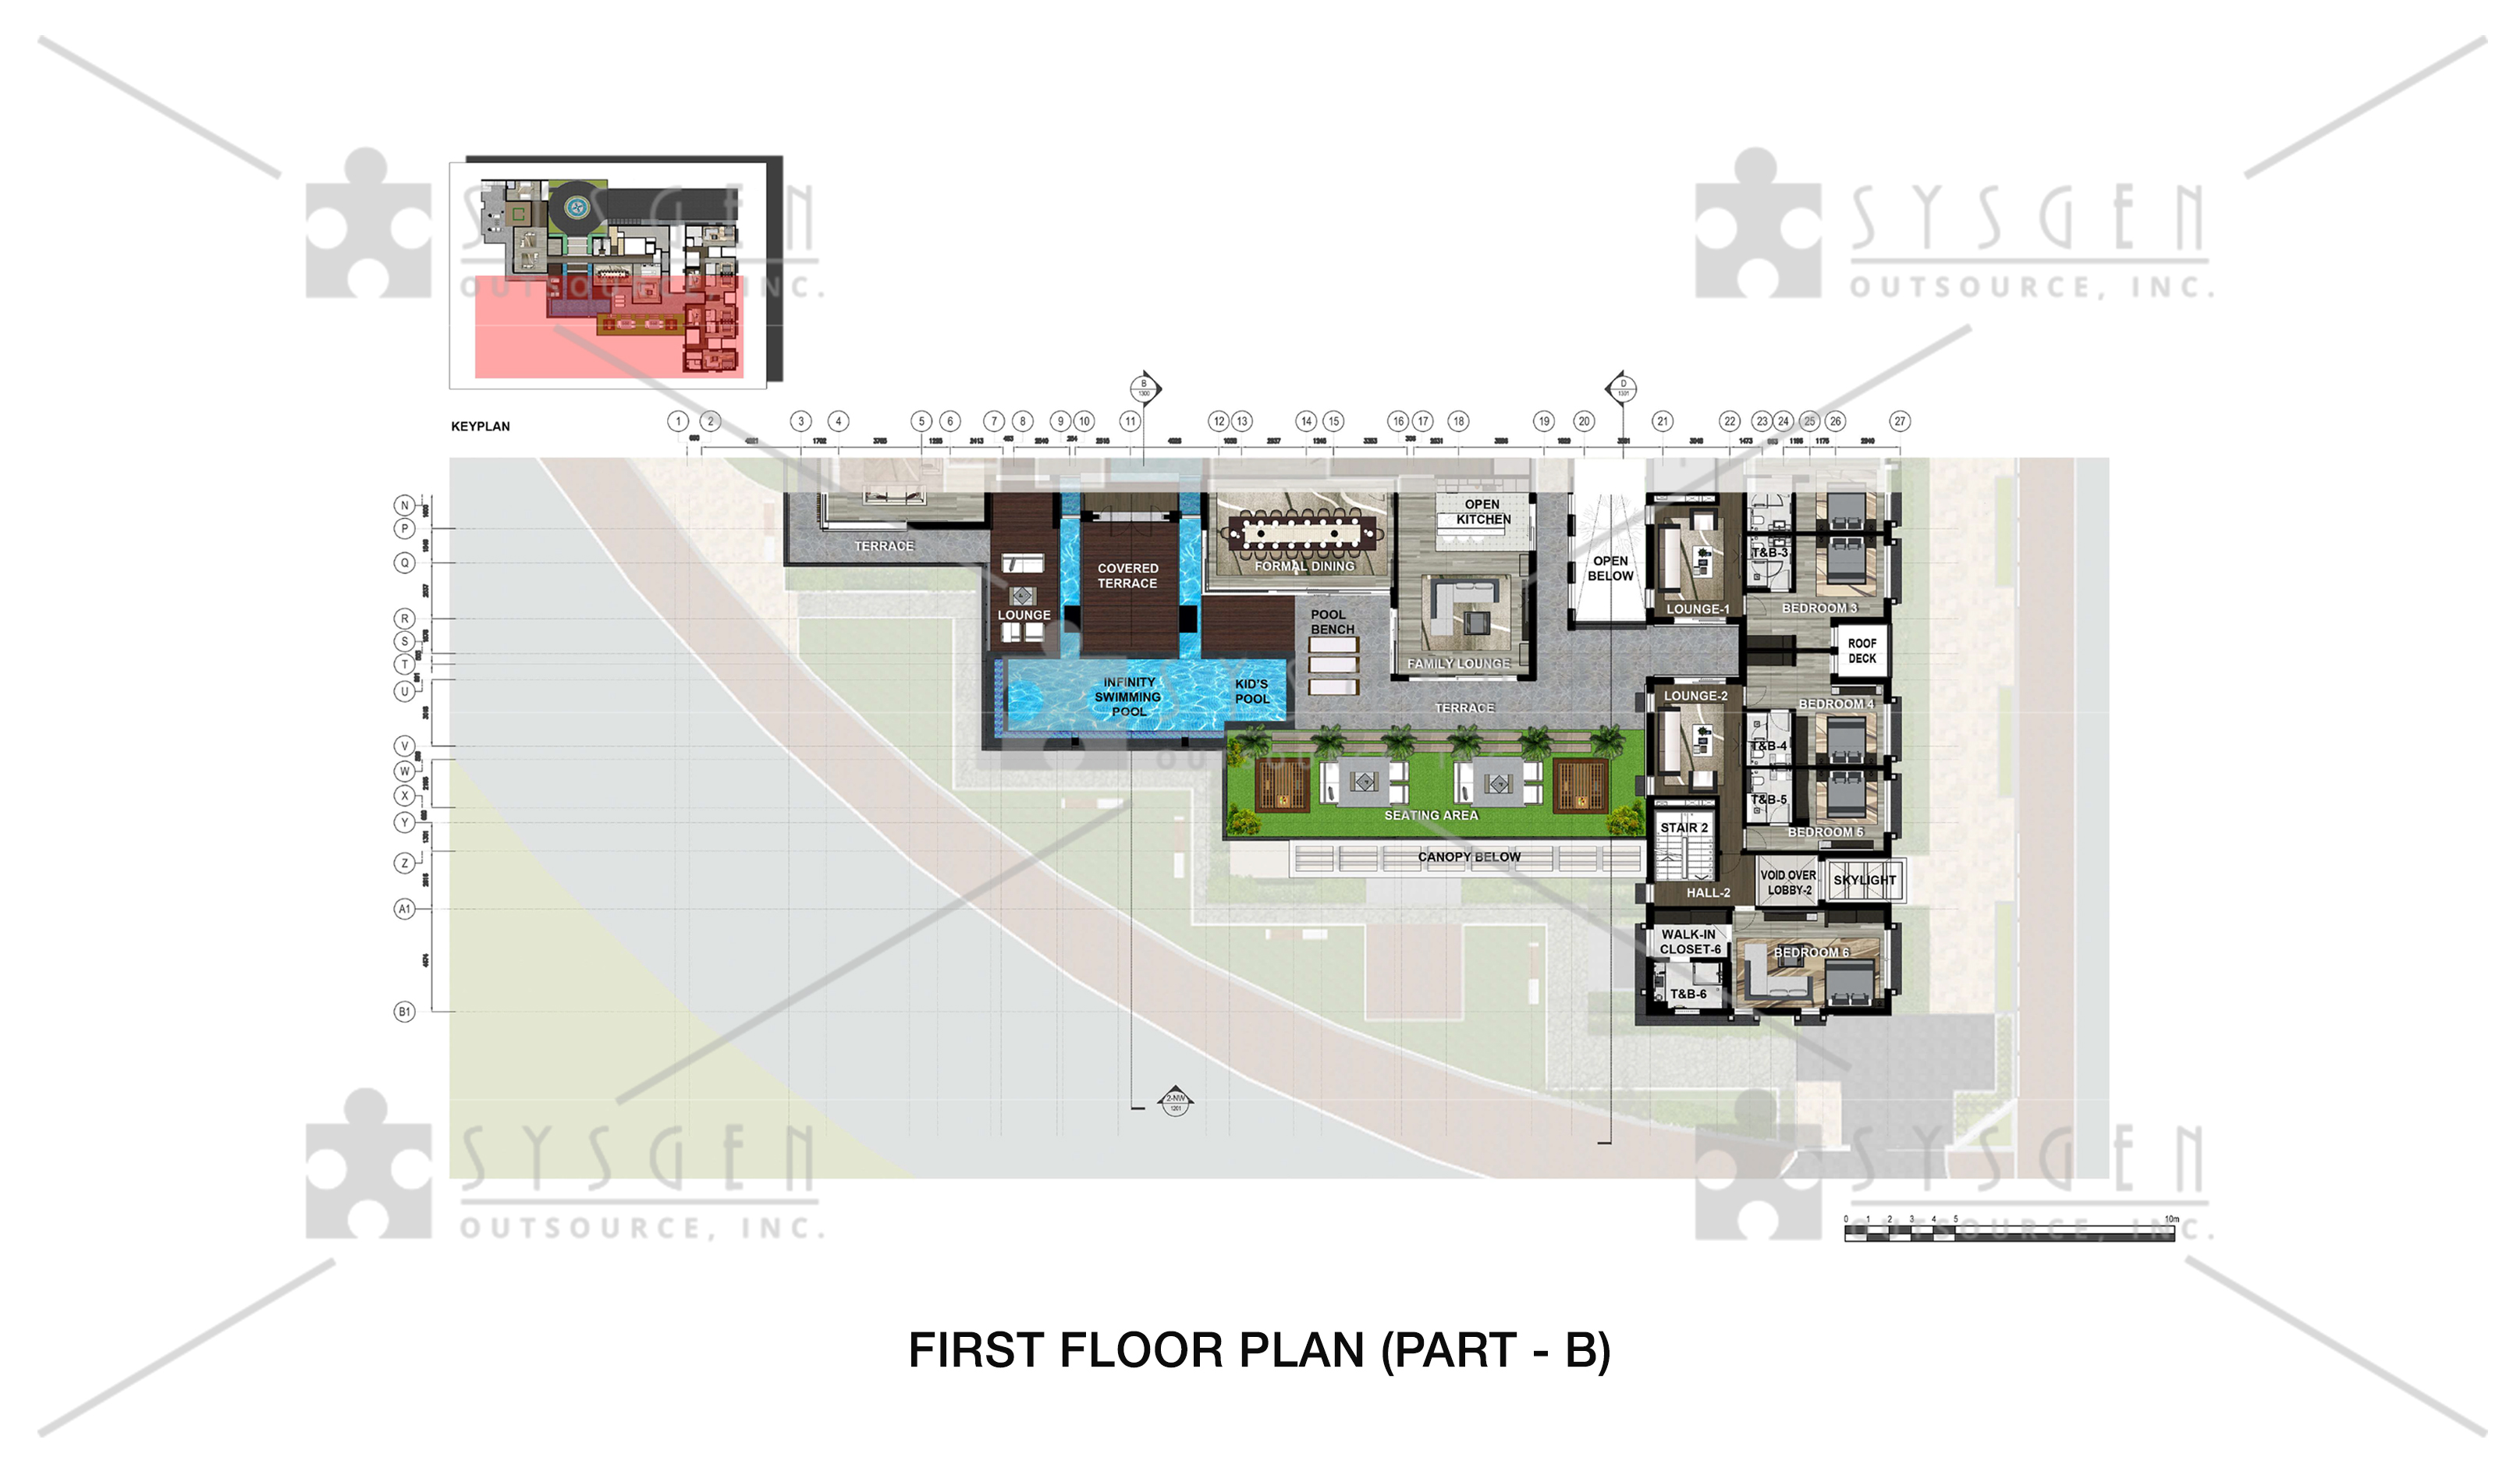 sysgen-outsource-cad-outsourcing-services-sketch-up-residential_villa-jj7